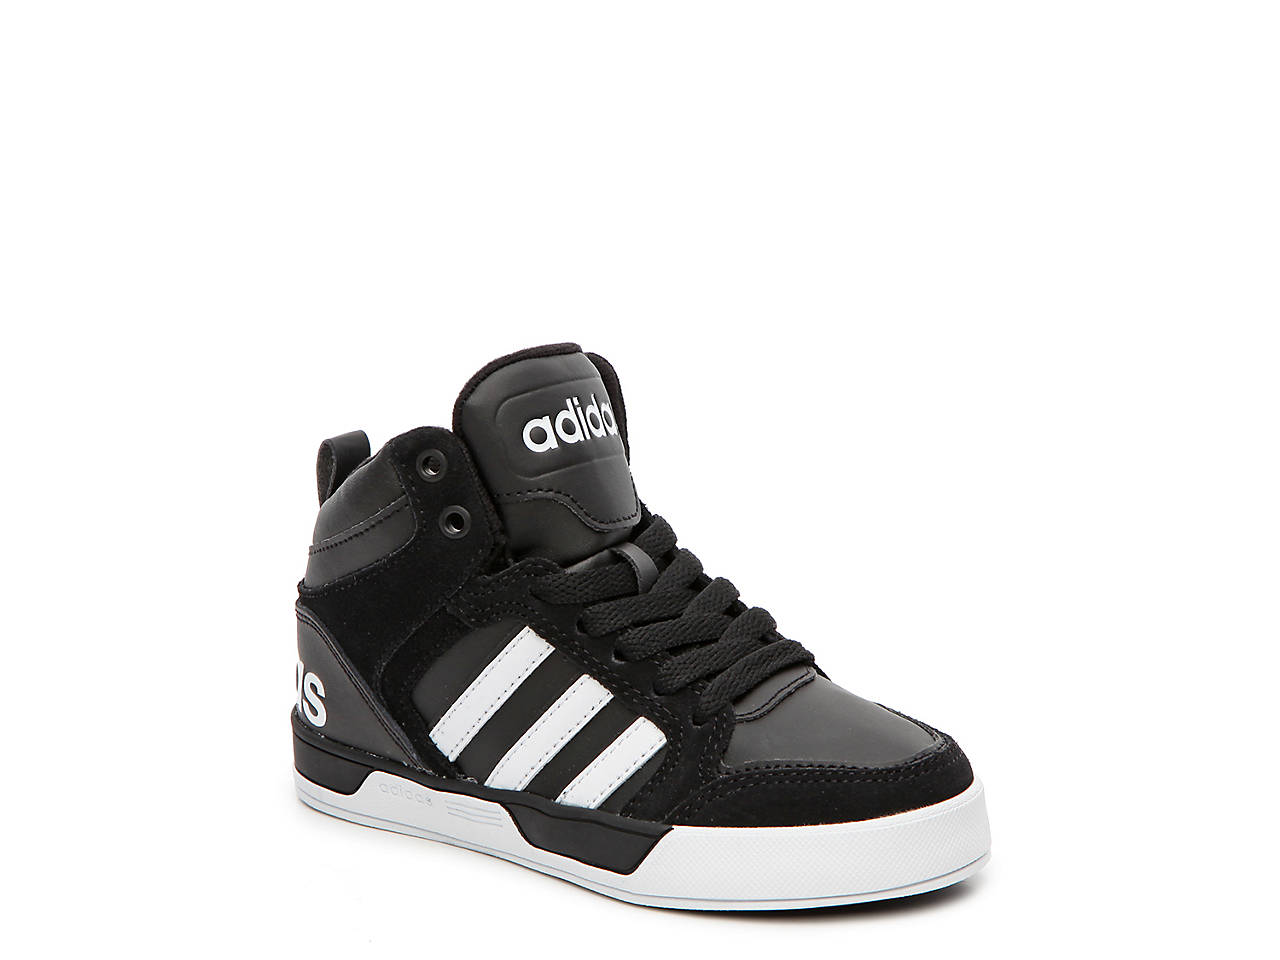 separation shoes 6f282 2e388 adidas Neo Raleigh Toddler   Youth High-Top Sneaker Kids Shoes   DSW